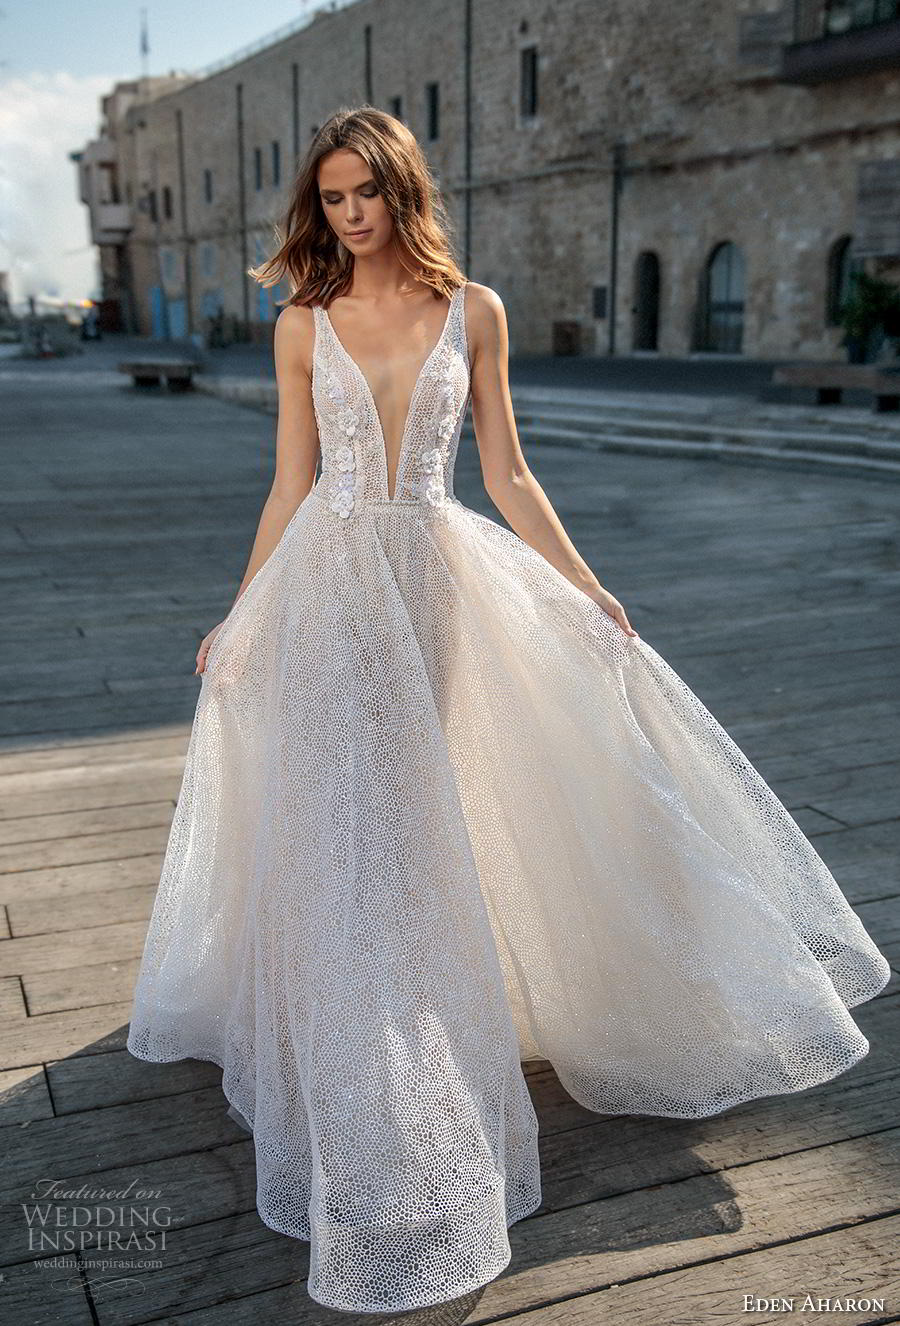 eden aharon 2019 bridal sleeveless deep plunging v neck full embellishment romantic soft a  line wedding dress backless v back sweep train (3) mv